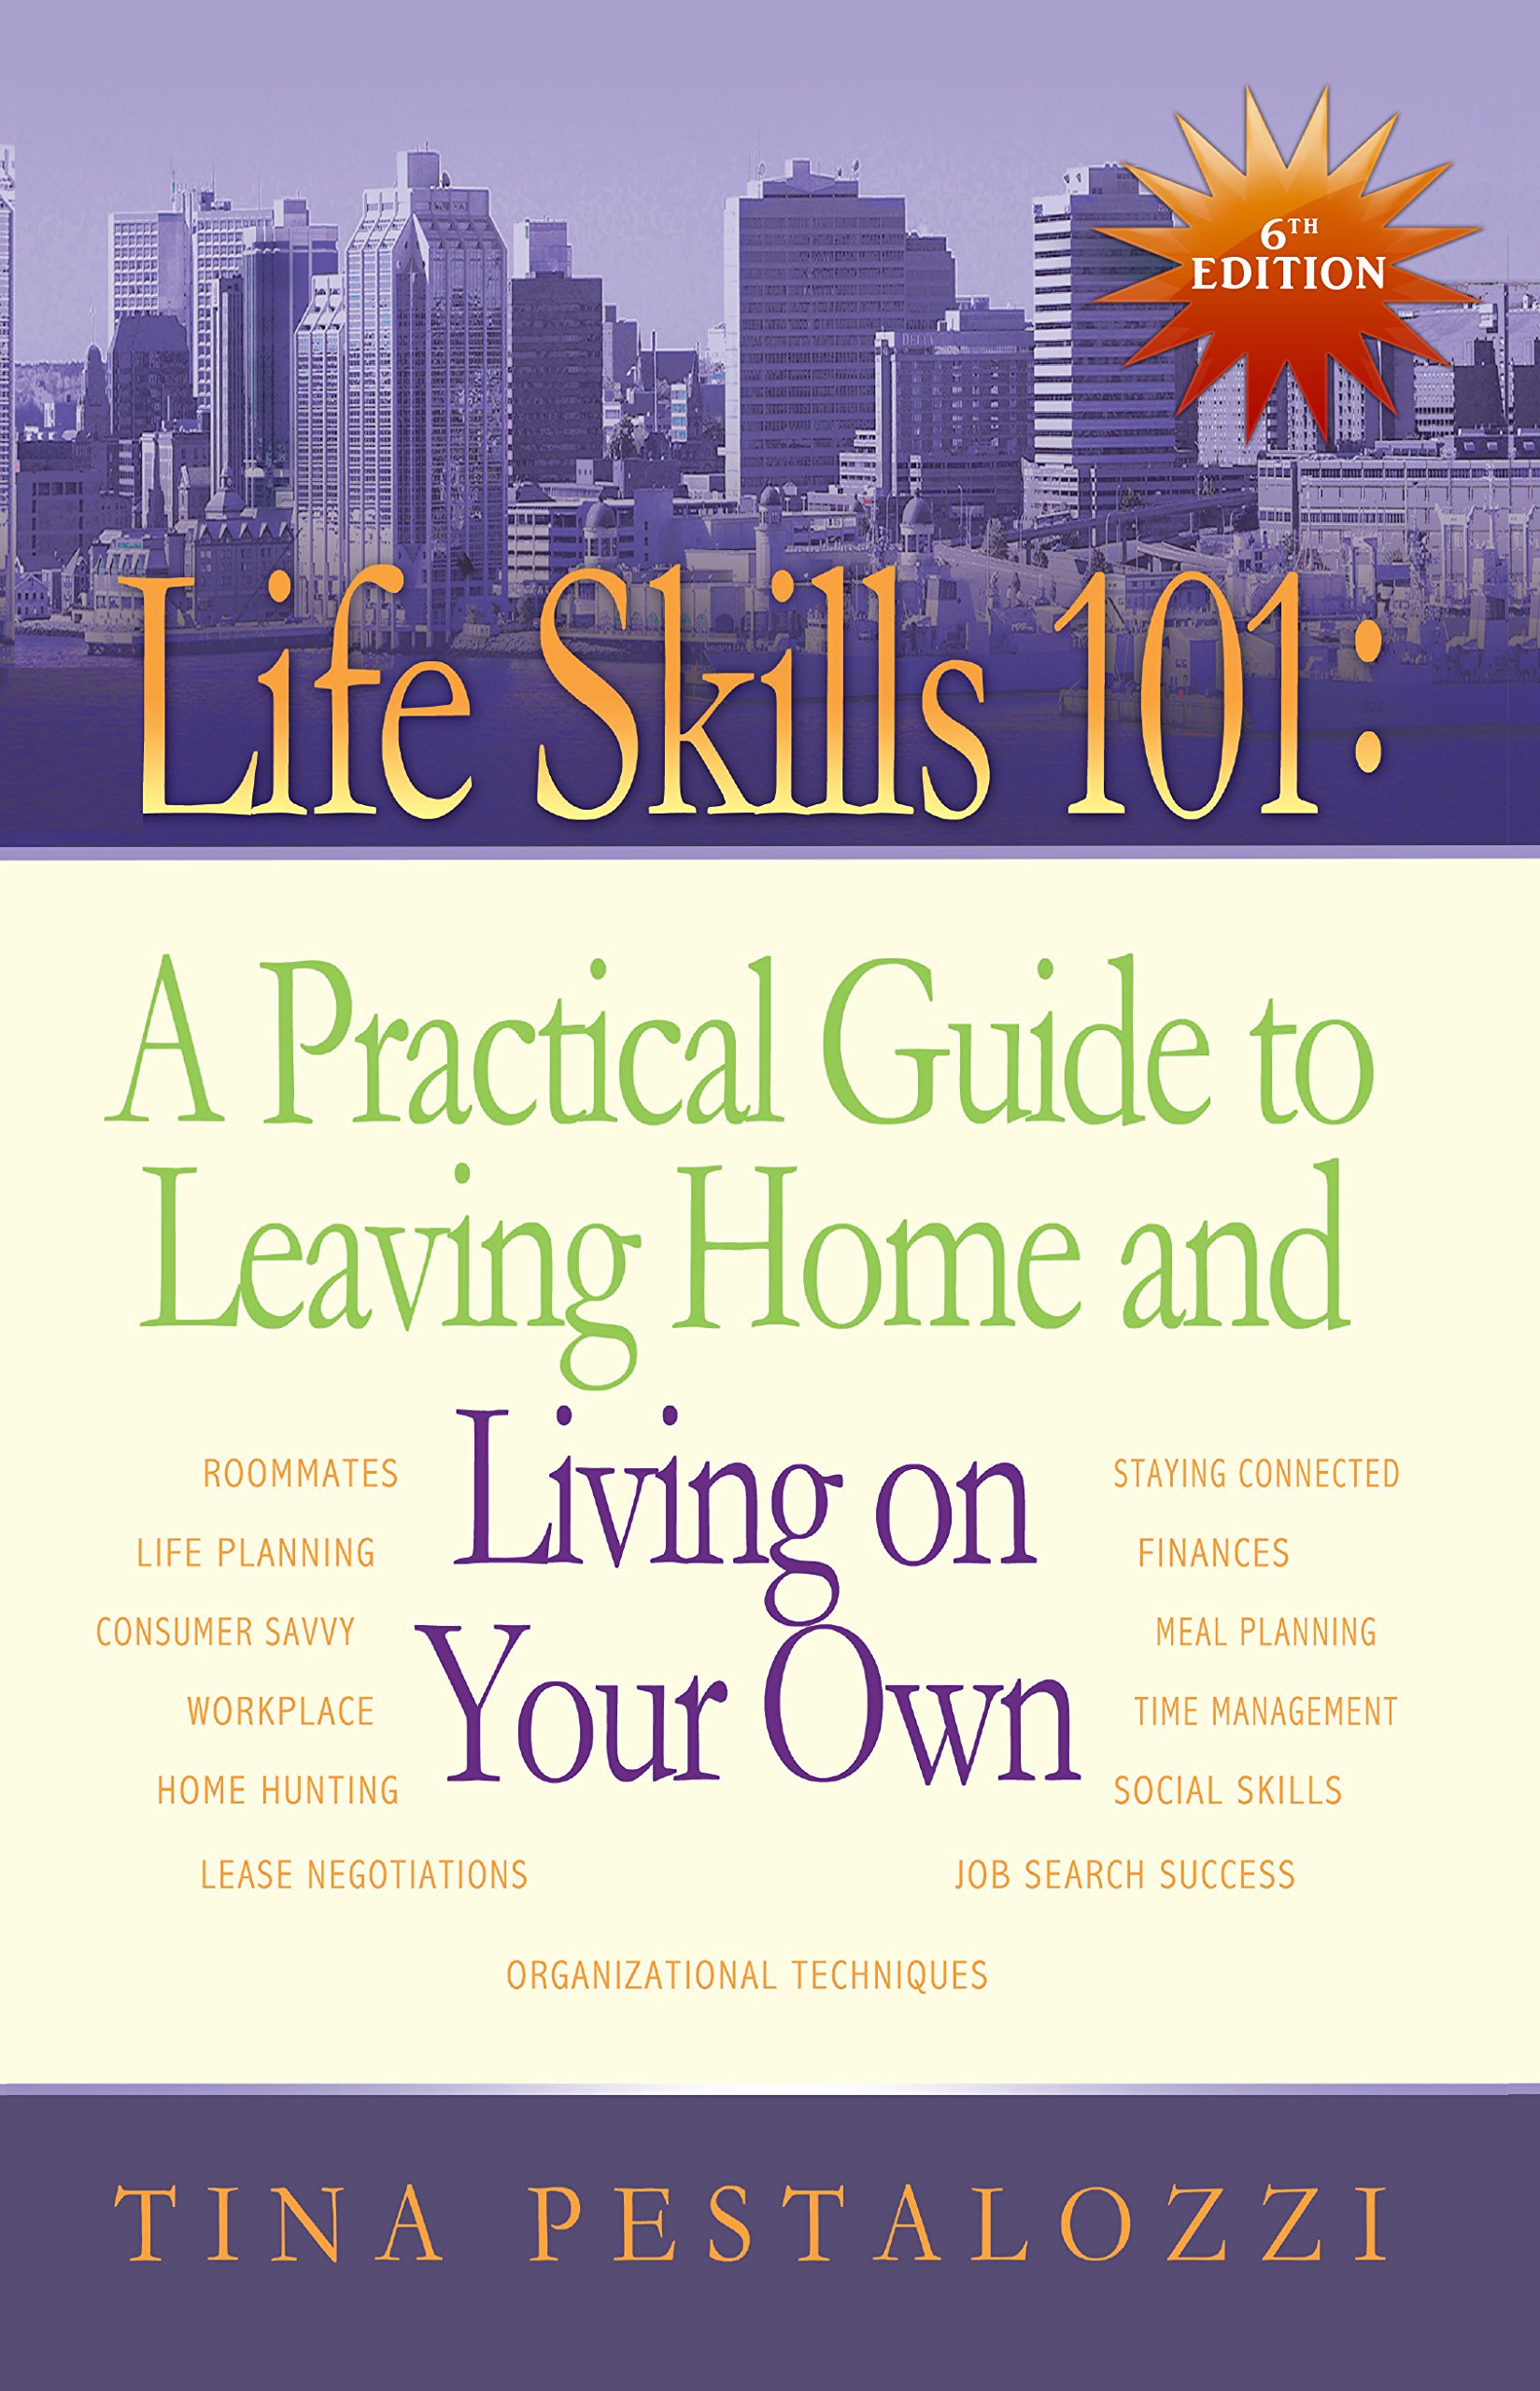 Life Skills 101 A Practical Guide To Leaving Home And Living On